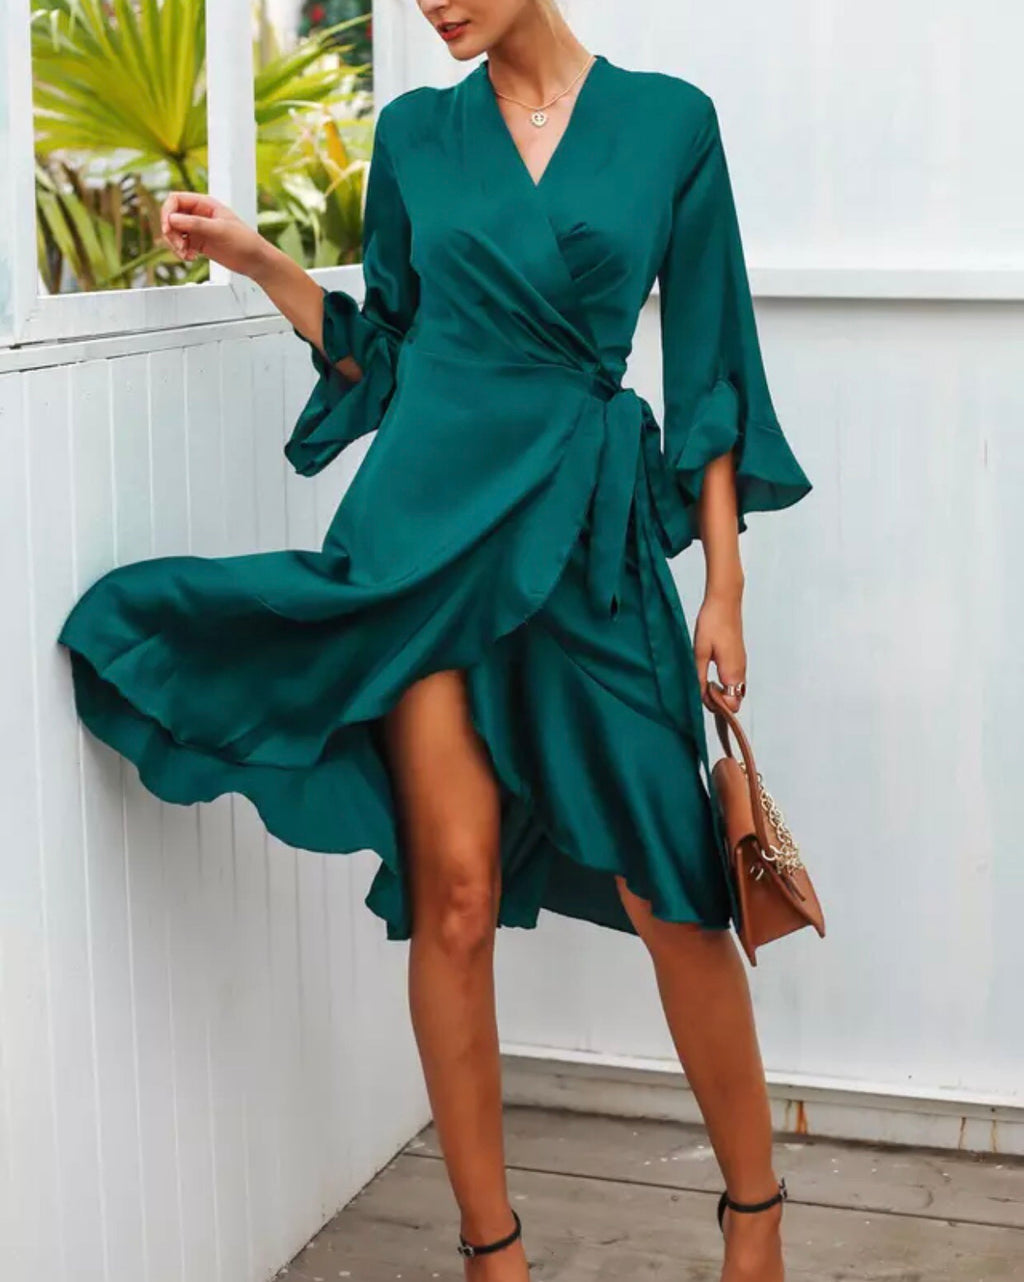 Katie emerald dress